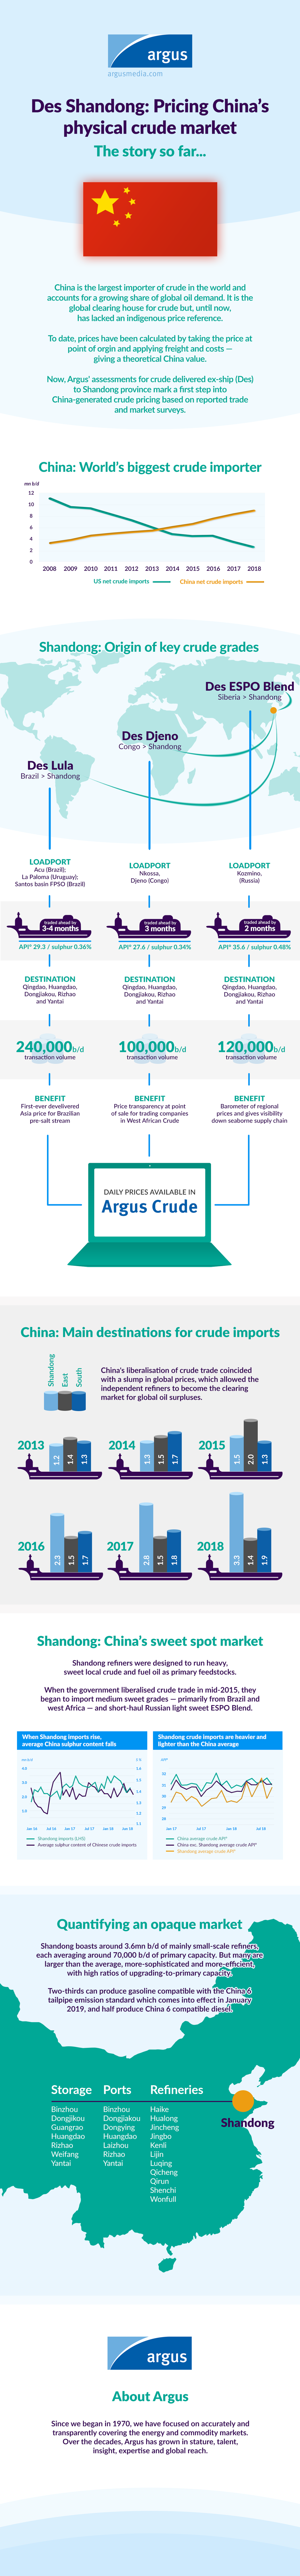 China's physical crude market